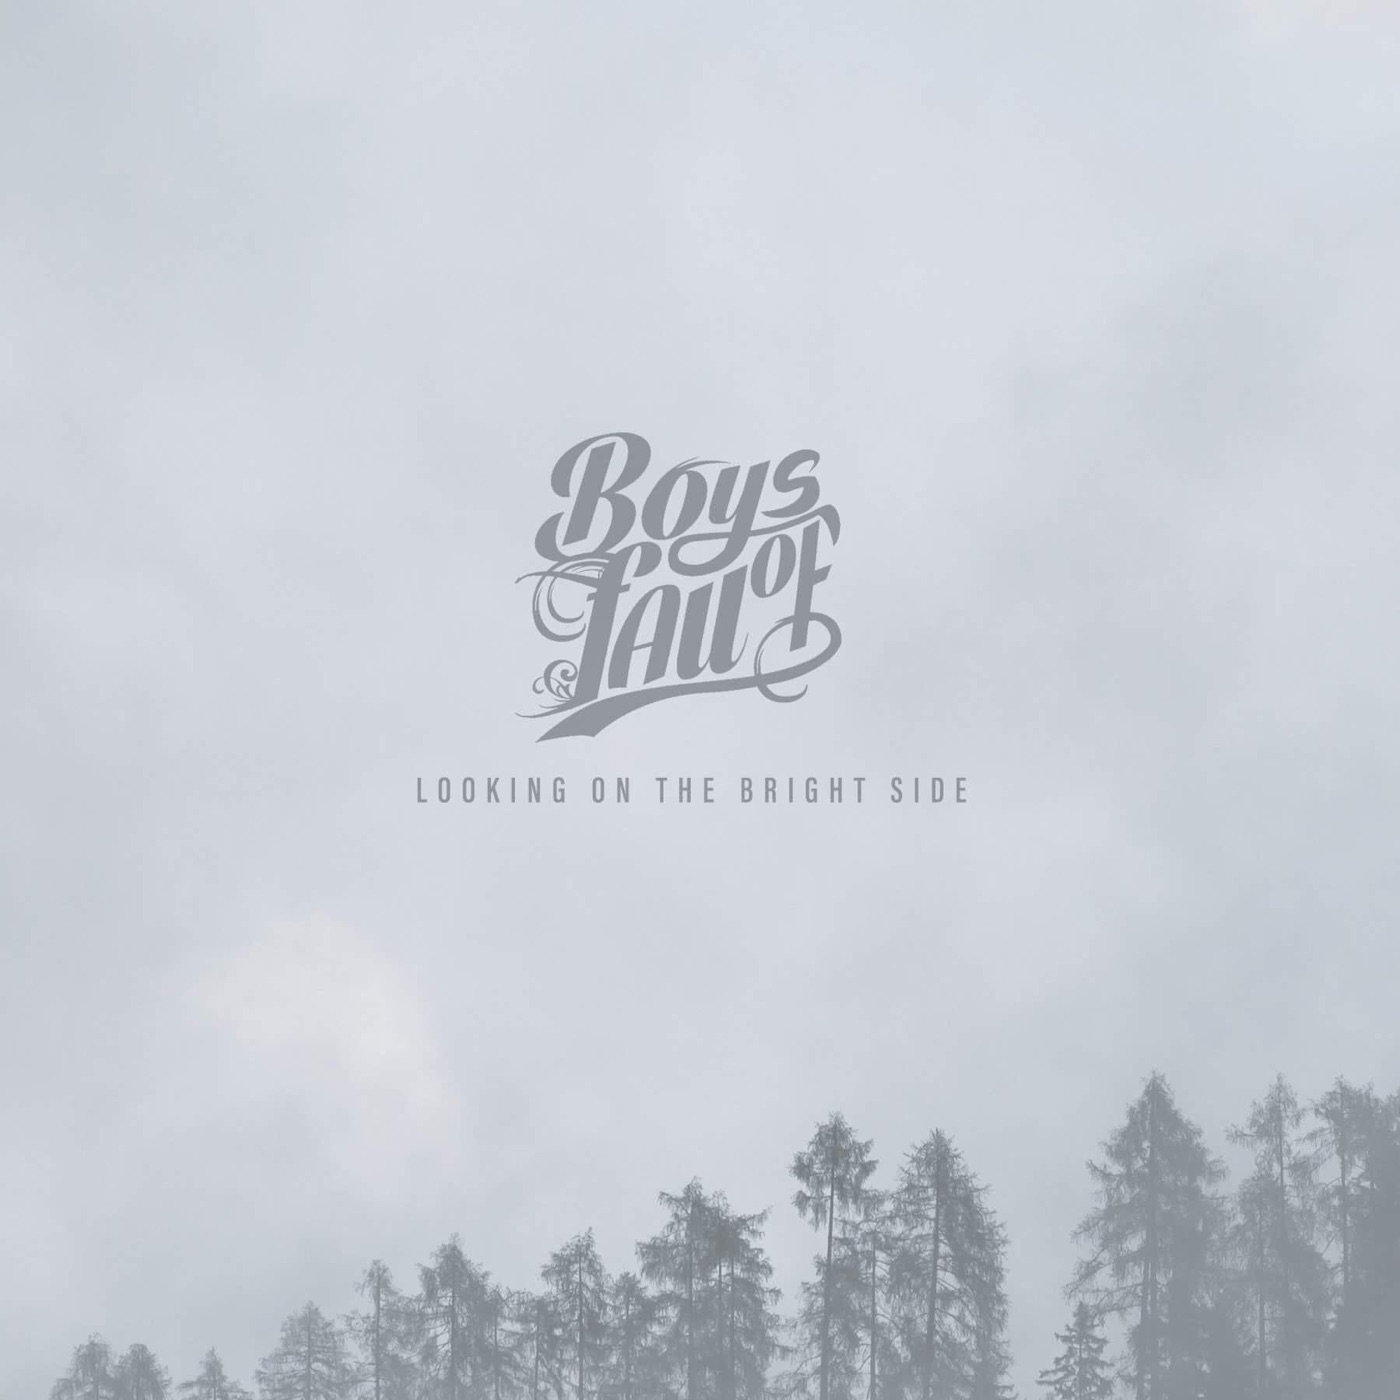 Boys of Fall - Looking on The Bright Side [single] (2017)